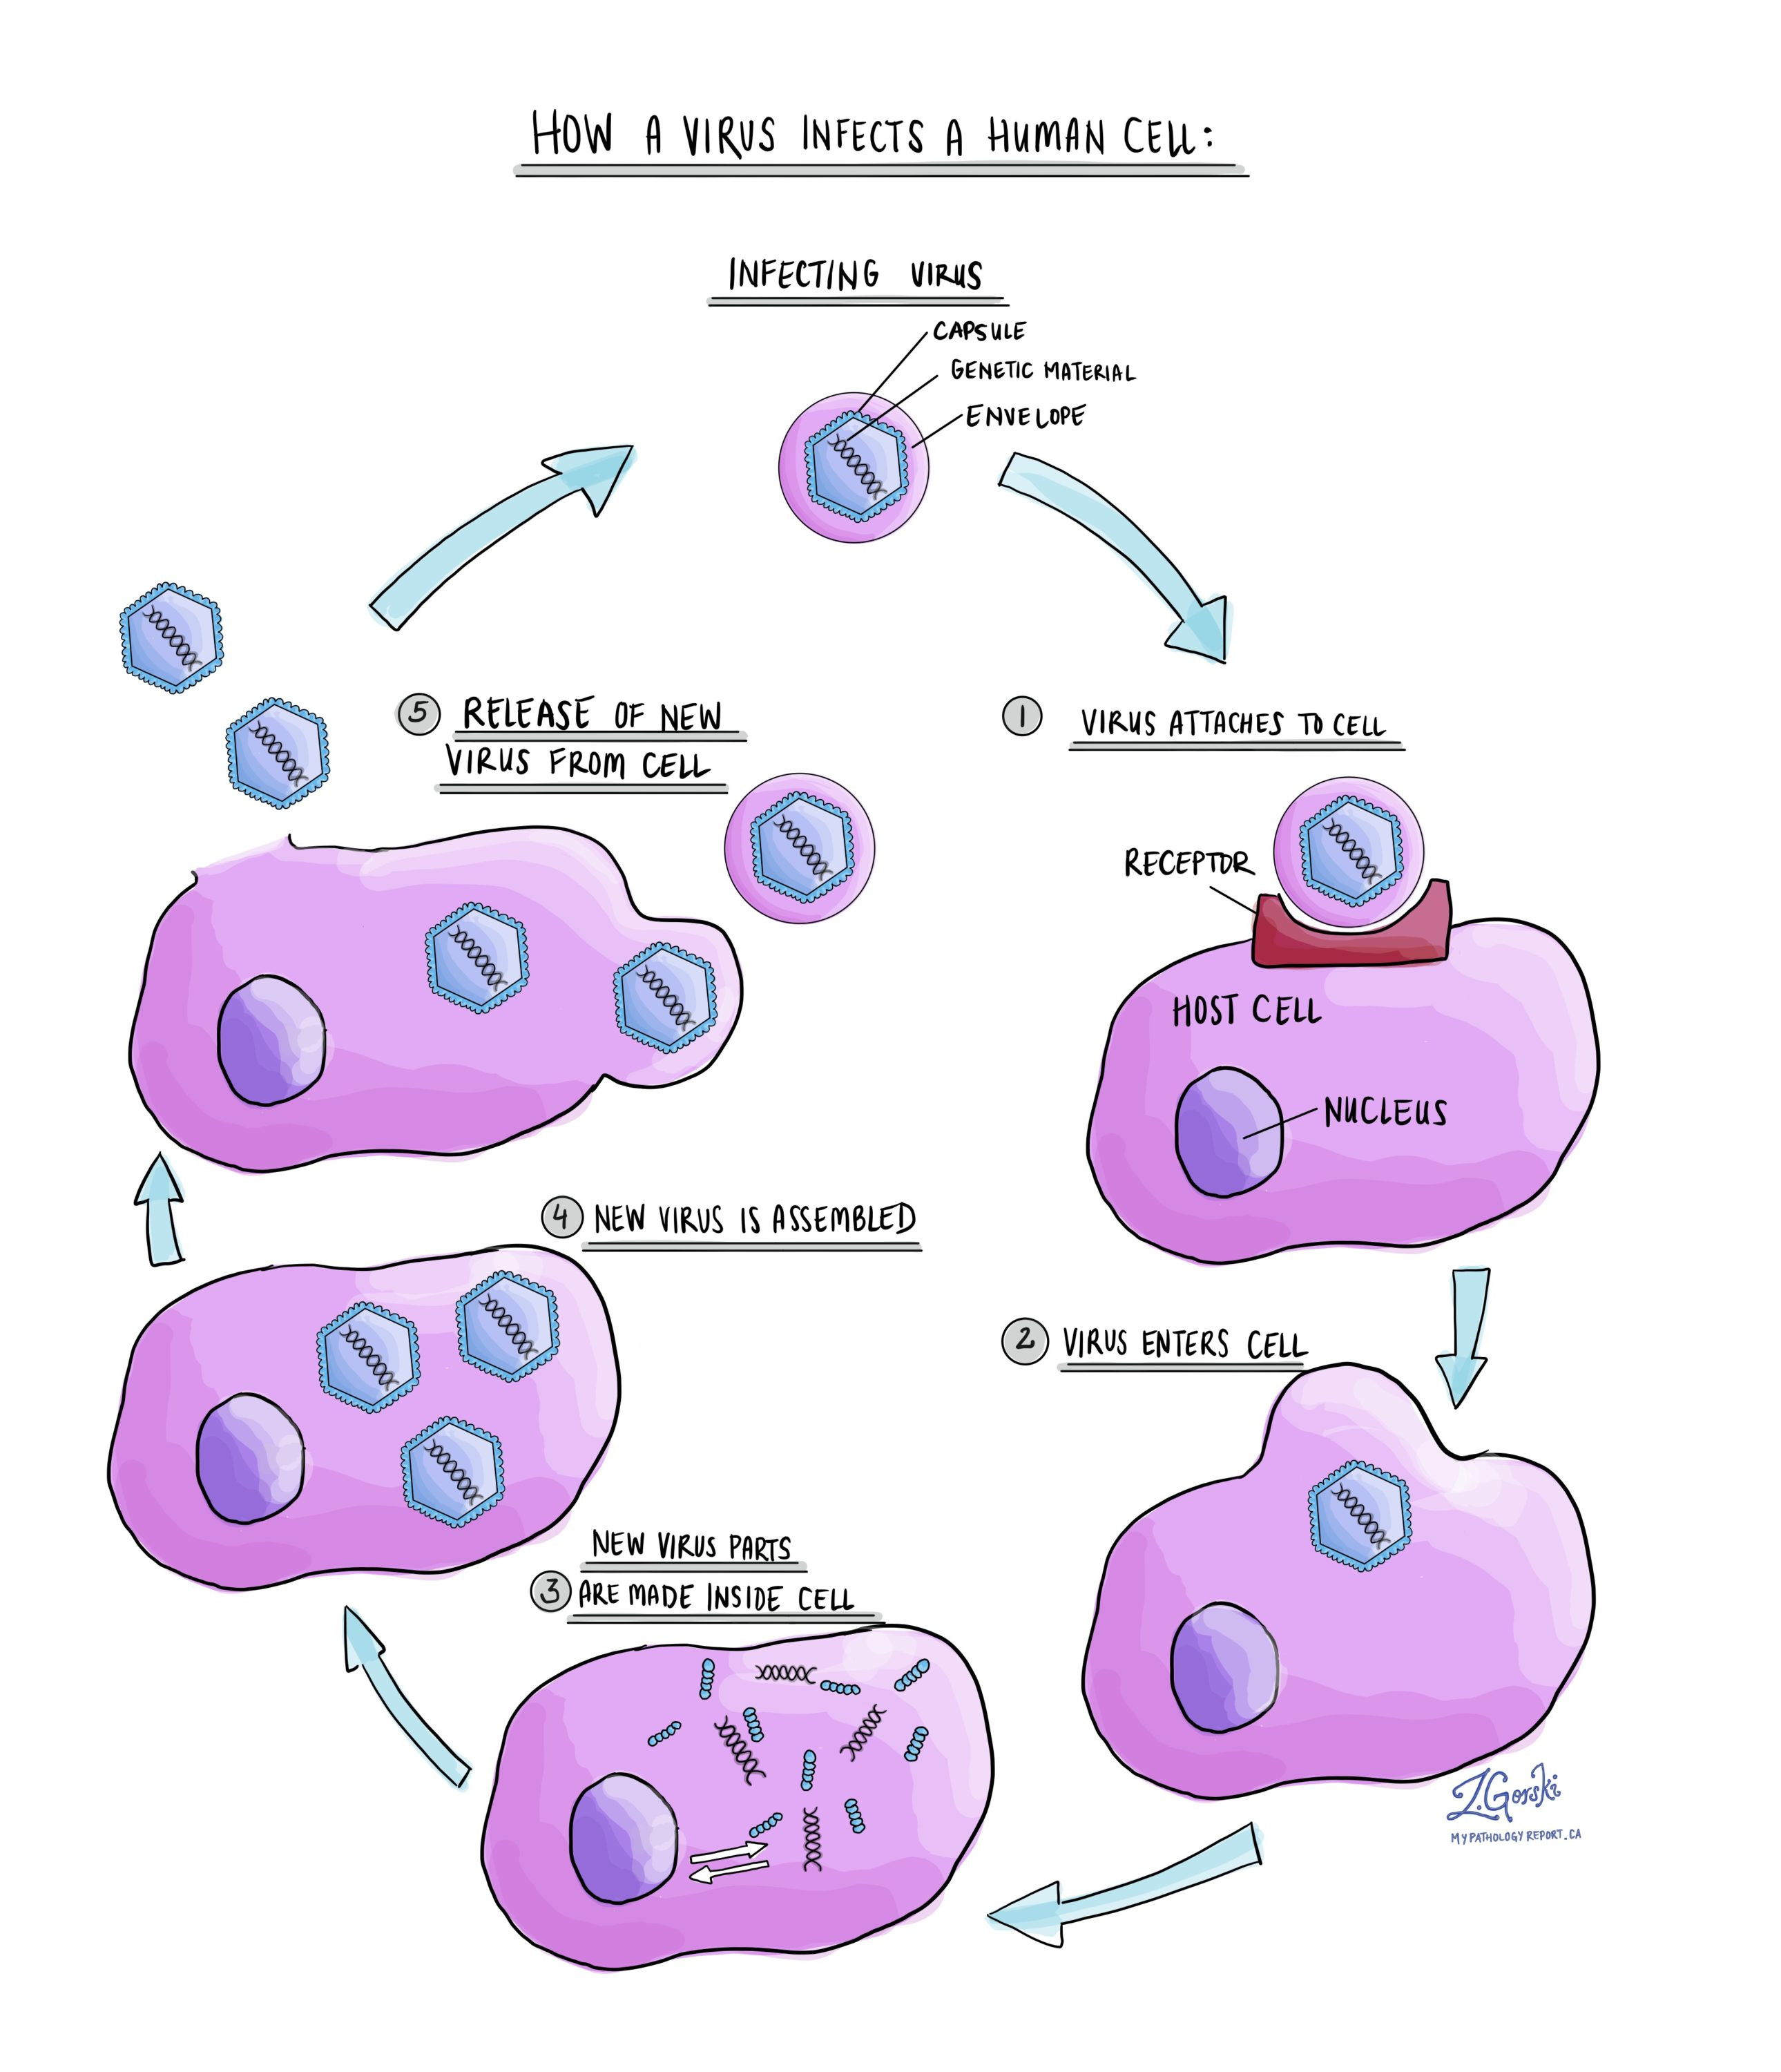 Cycle of a virus